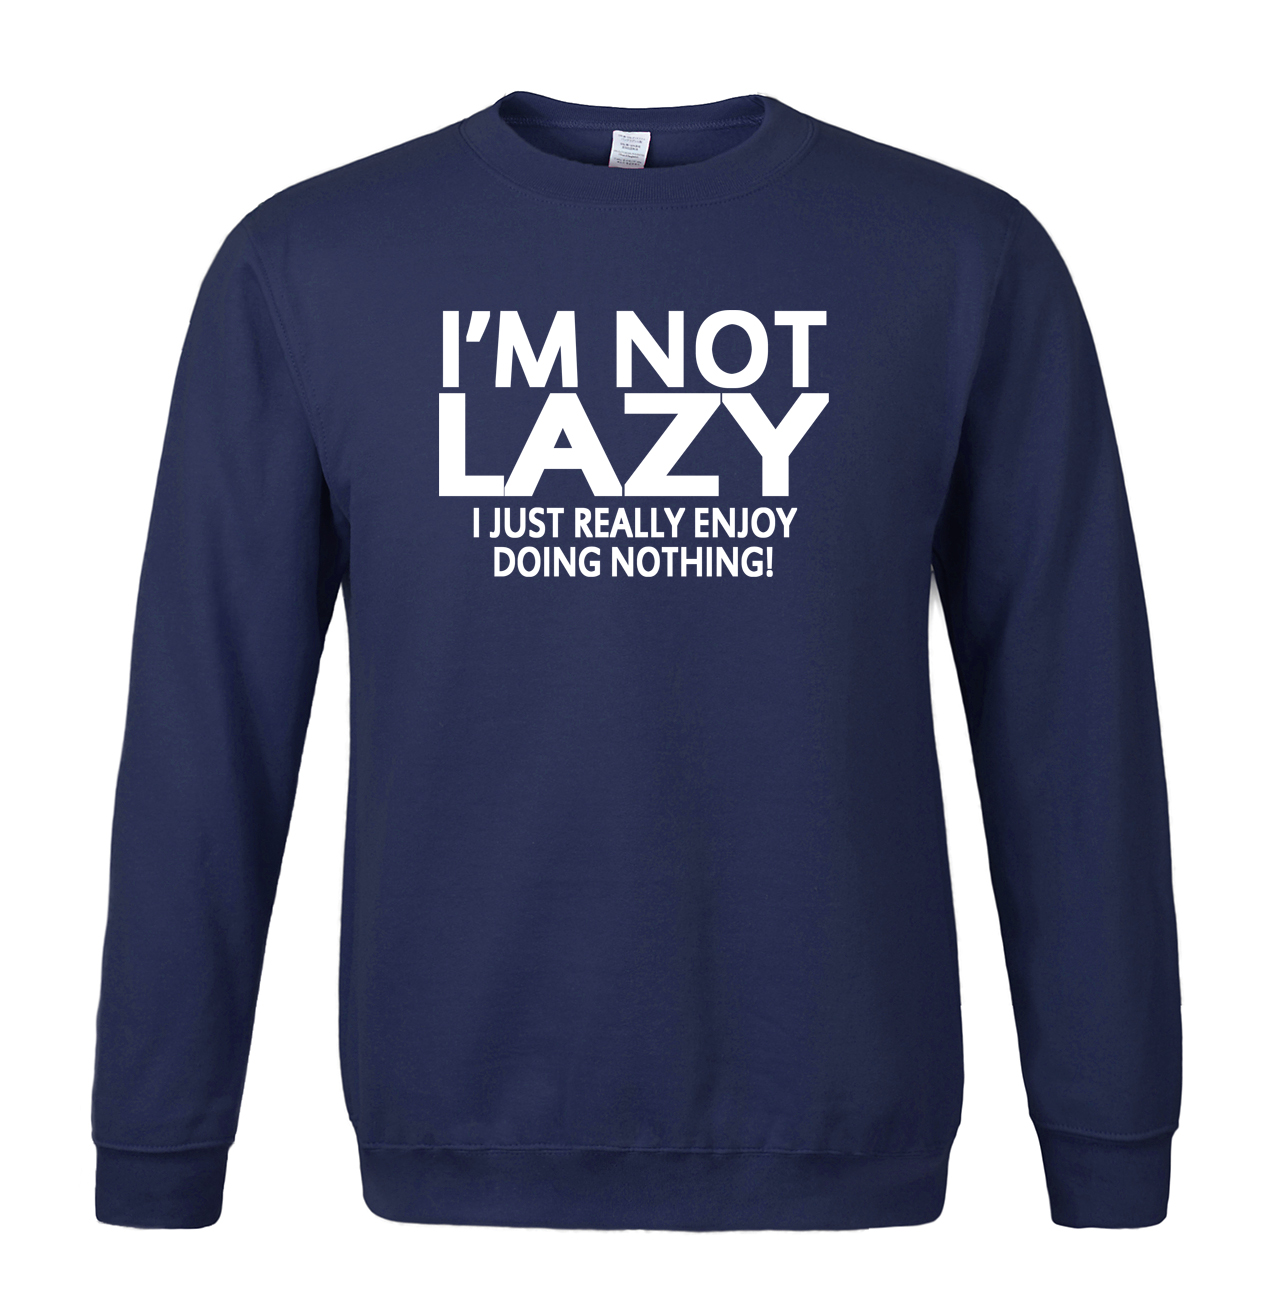 adult humor men sweatshirt I'm Not Lazy I Just Enjoy Doing Nothing 2019 new spring winter casual hoodies men fleece tracksuit